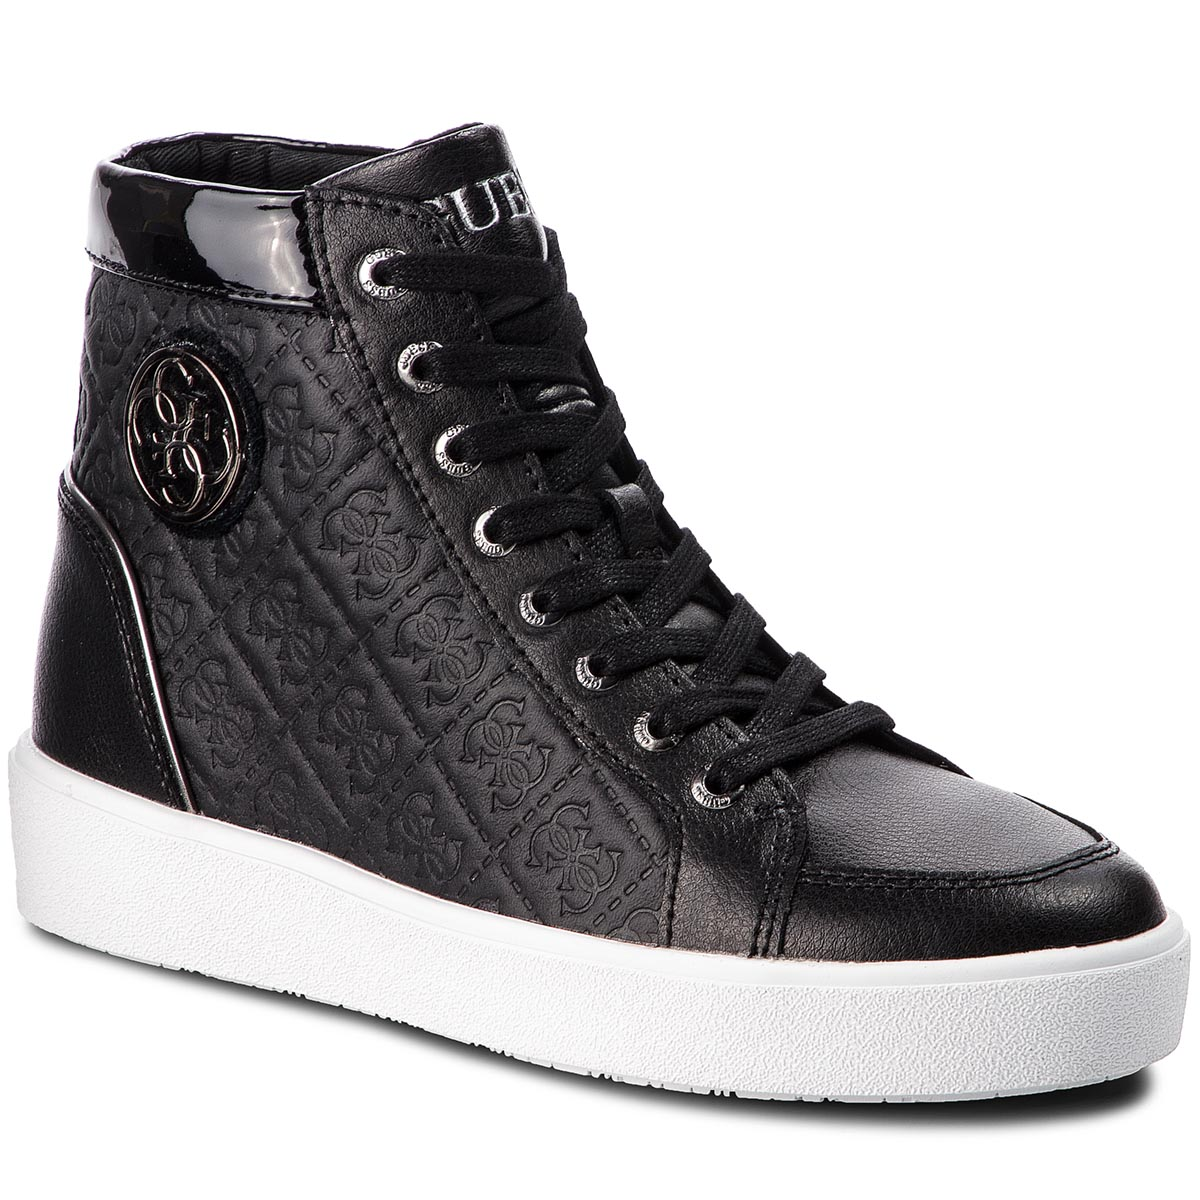 Sneakers GUESS - FLACE3 LEP12 BLACK